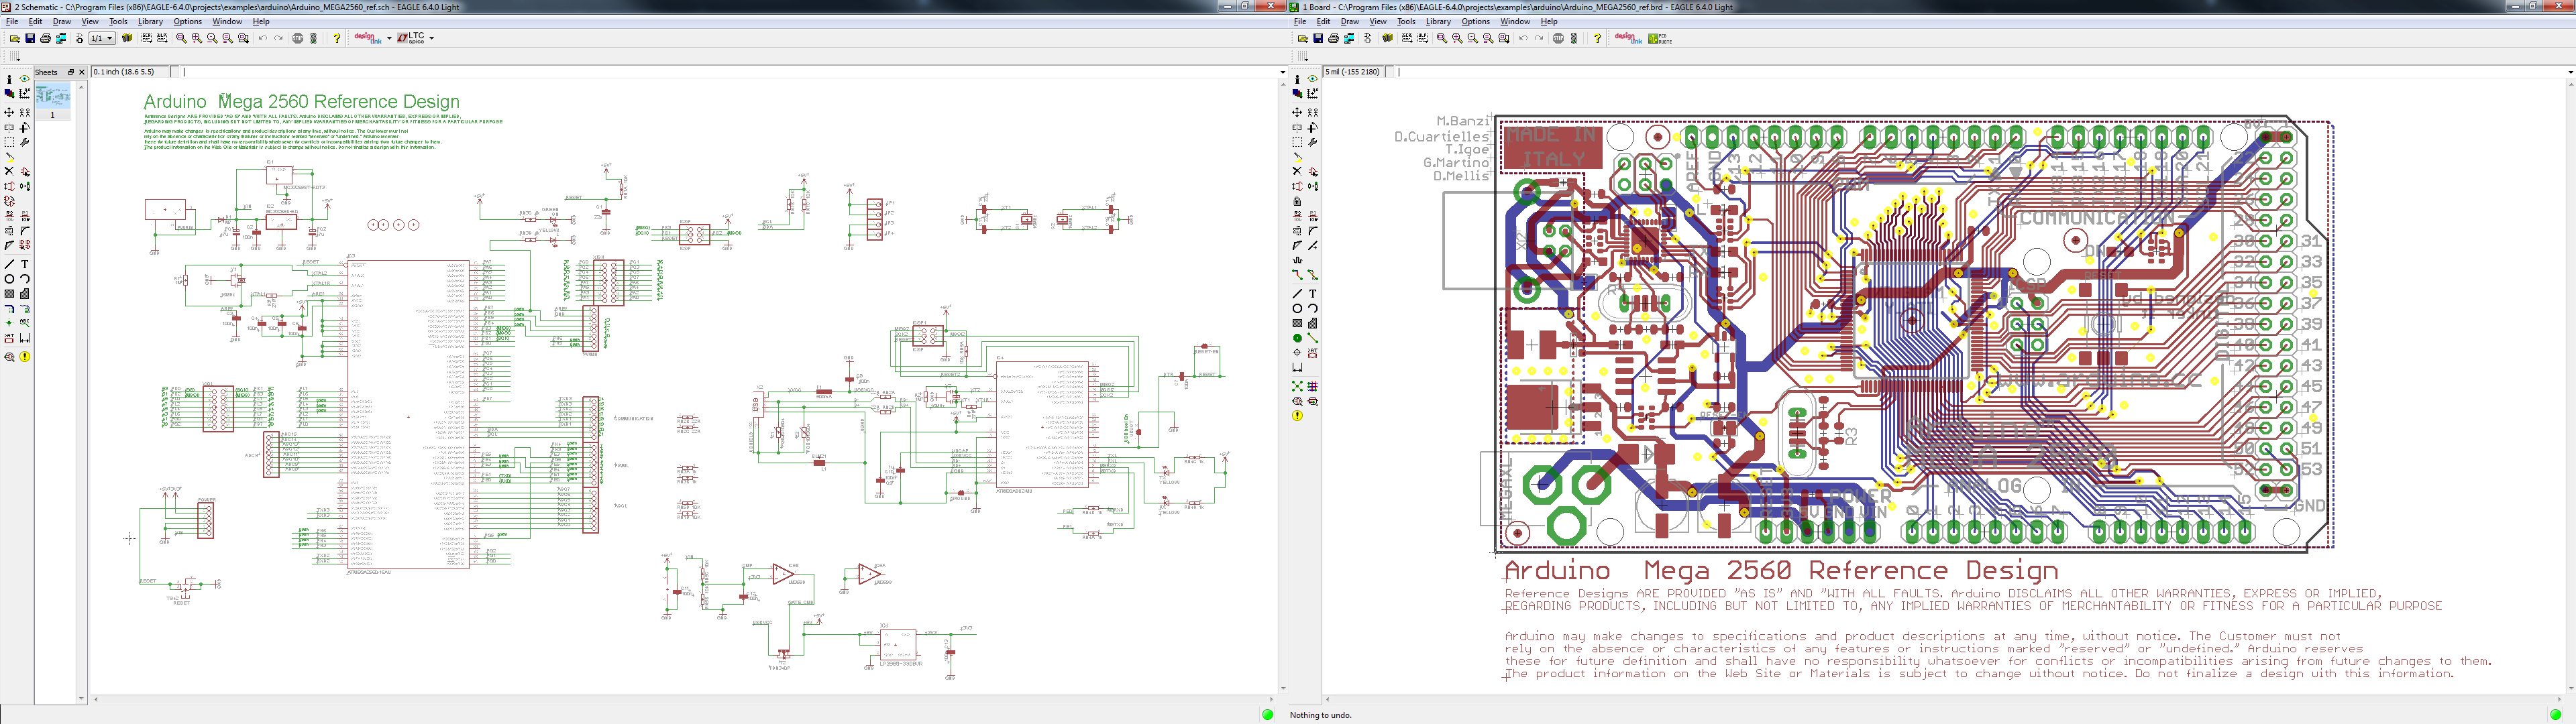 How To Install And Setup Eagle Software Is Very Useful When Simulating This Type Of Circuit Diagram Board Schematic View Both Open